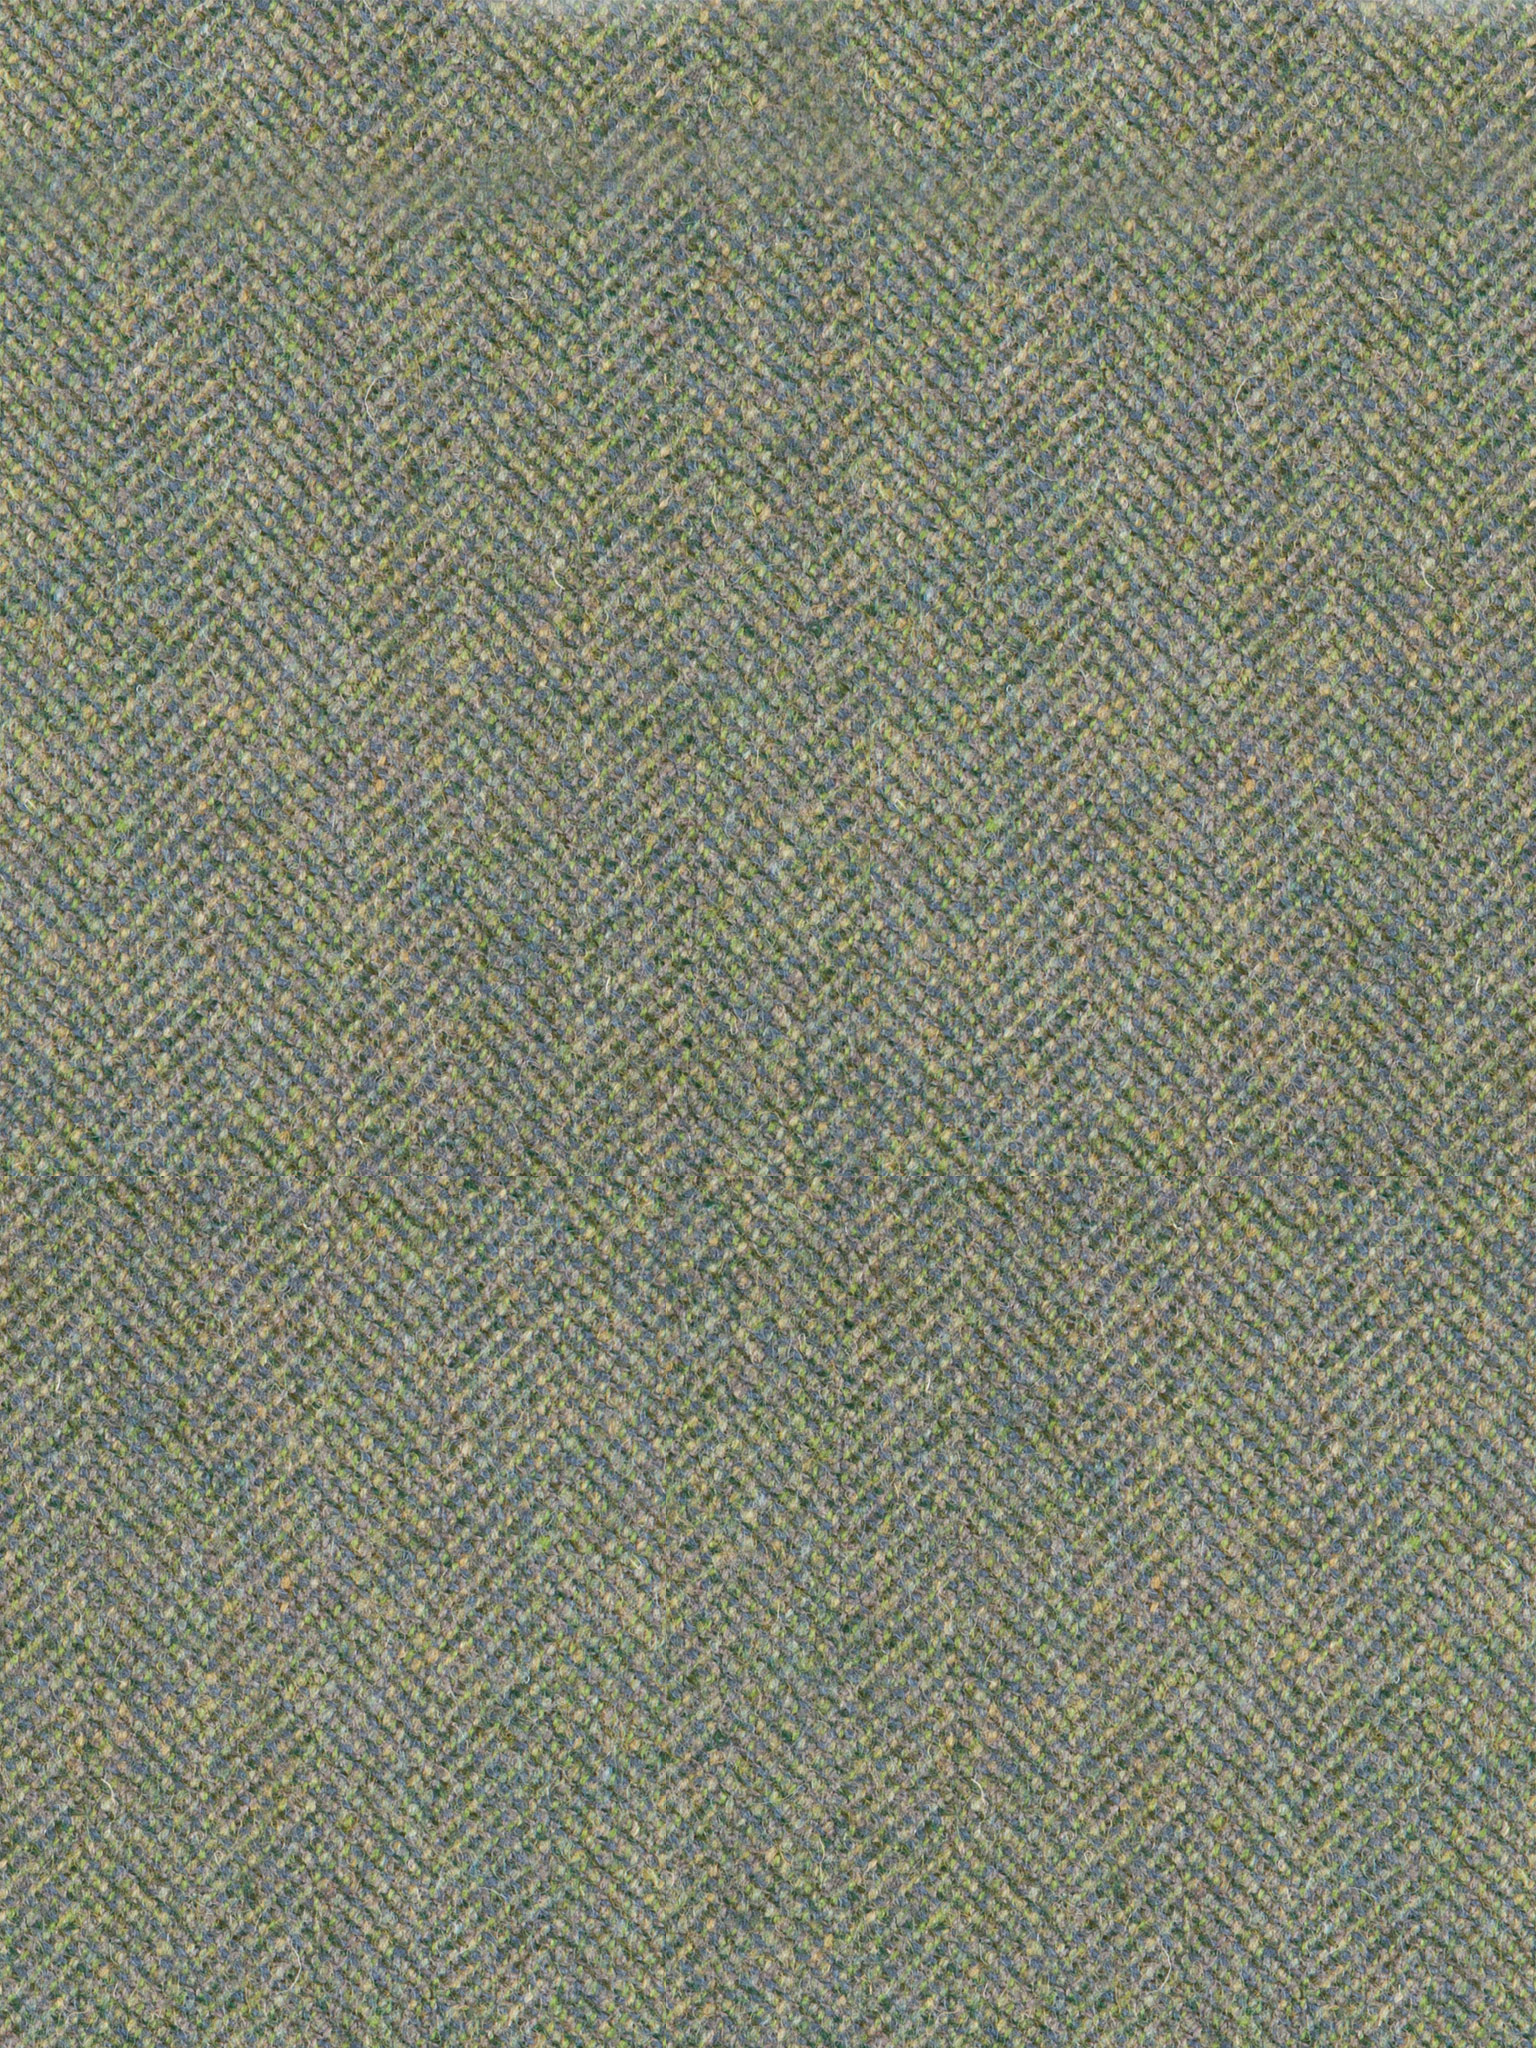 HIGHLAND TWEED DE10234